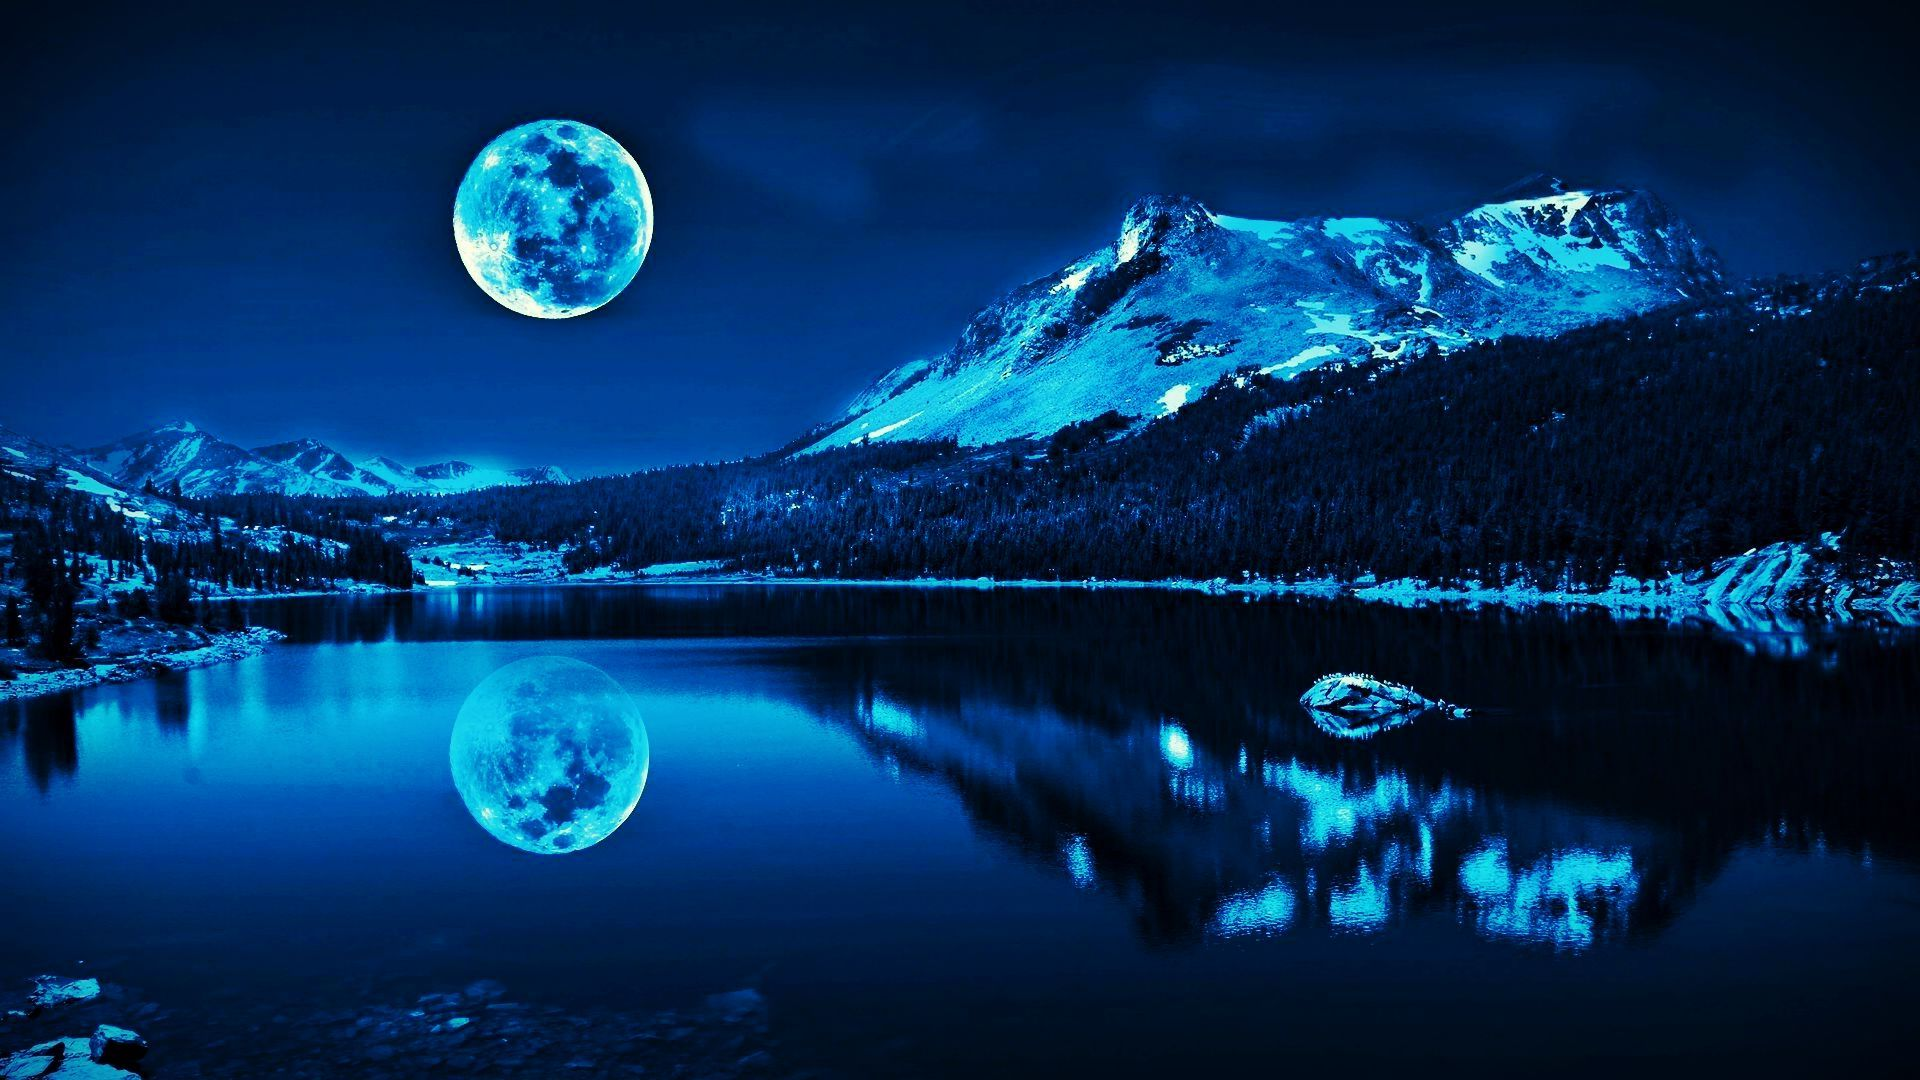 Super Cool Blue Wallpapers Top Free Super Cool Blue Backgrounds